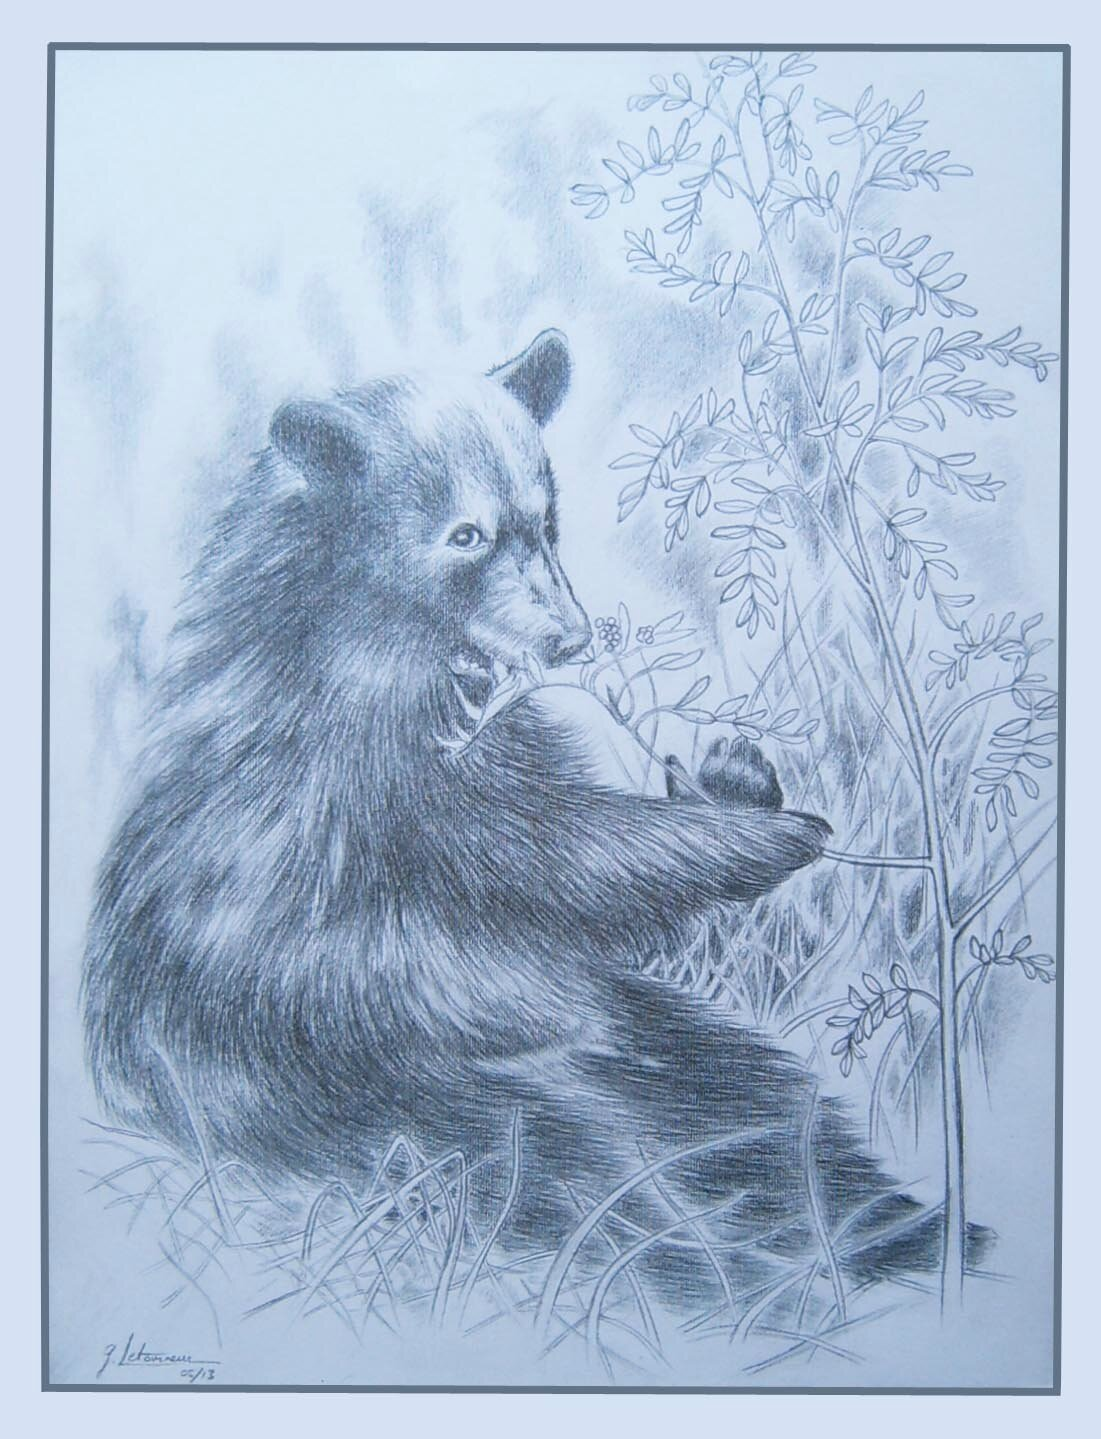 Ours noir américain Forêts Middle Ouest - Ours baribal Inspiration photo Daniel Cox - Drawing of bear - Desen de urs - Bärenzeichnung - Рисунок относительно медведя